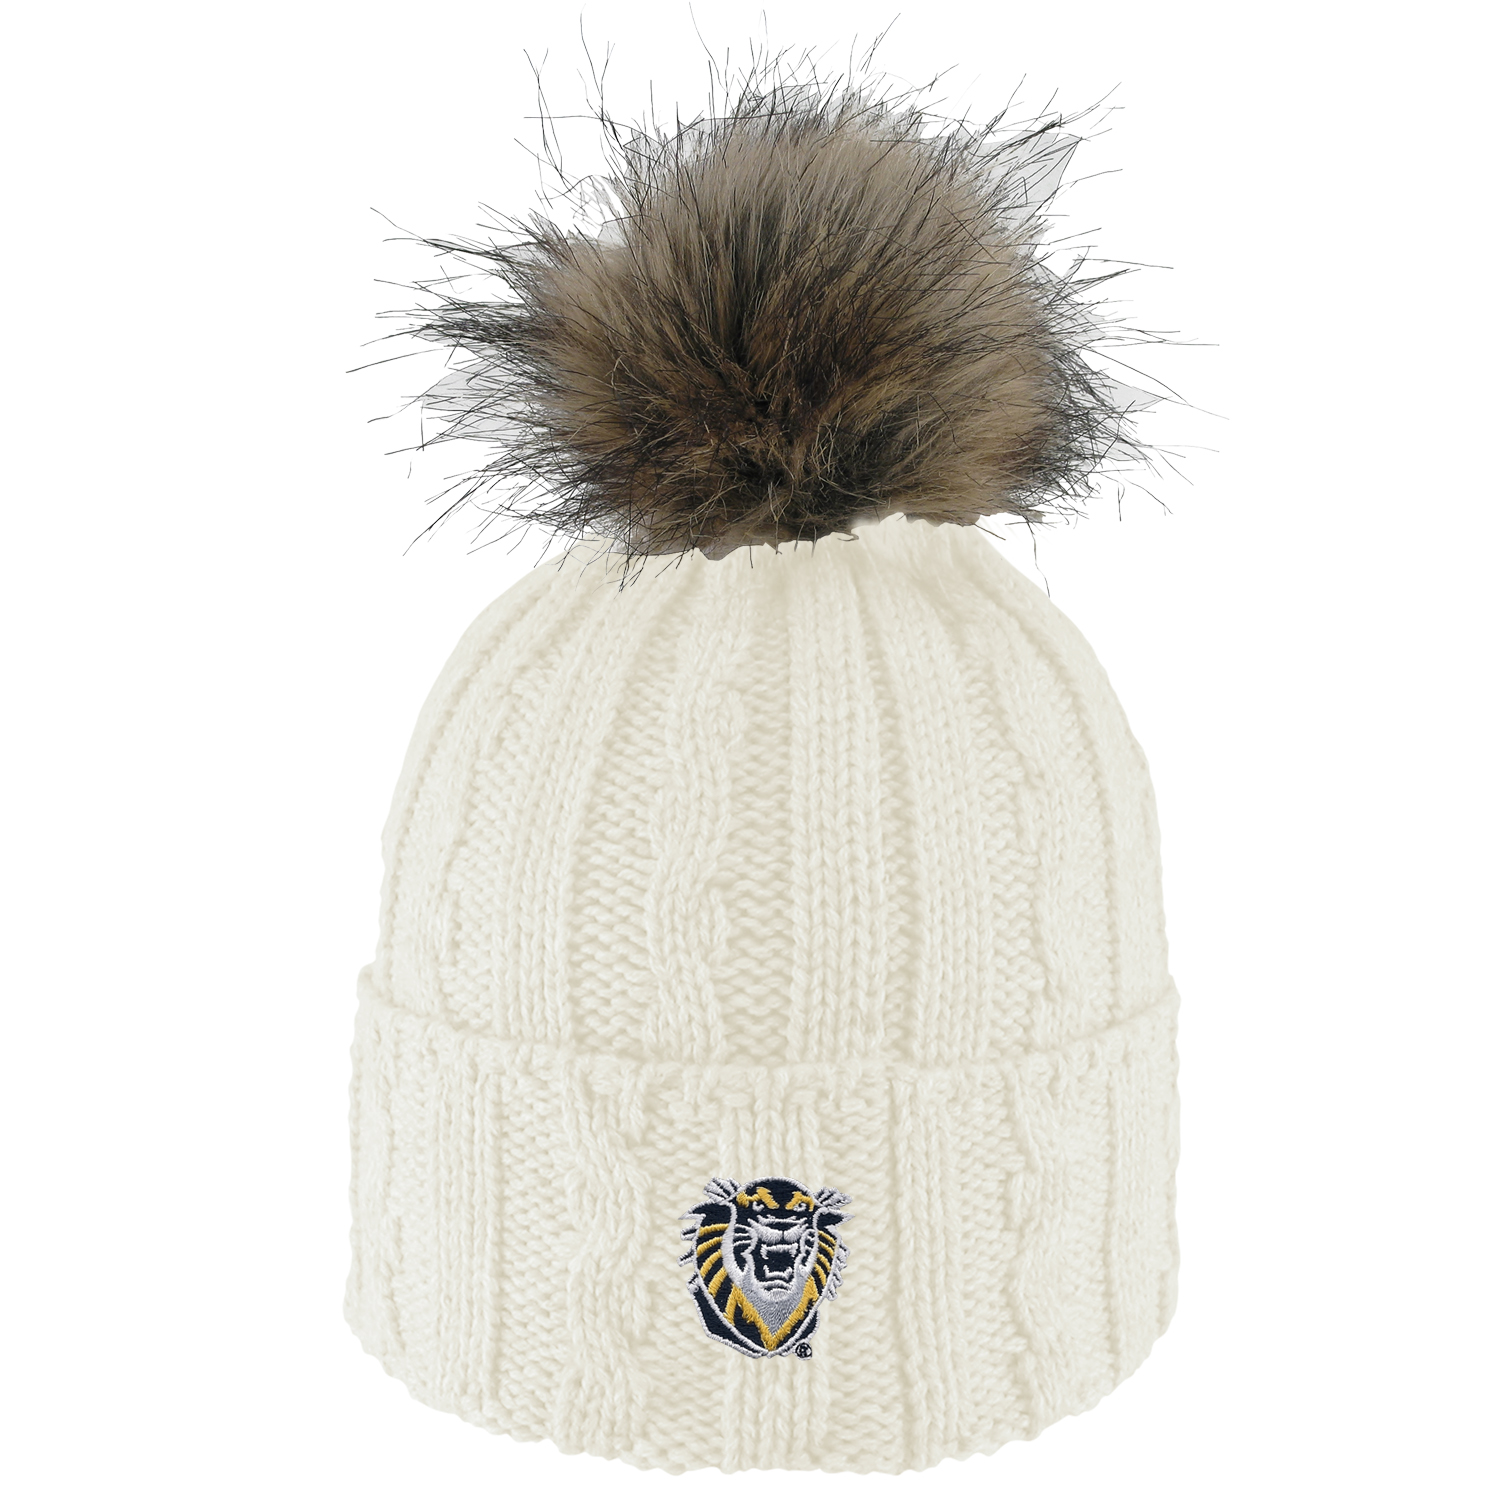 Image for the Knit Cuff Hat with Faux Fur and Pom product